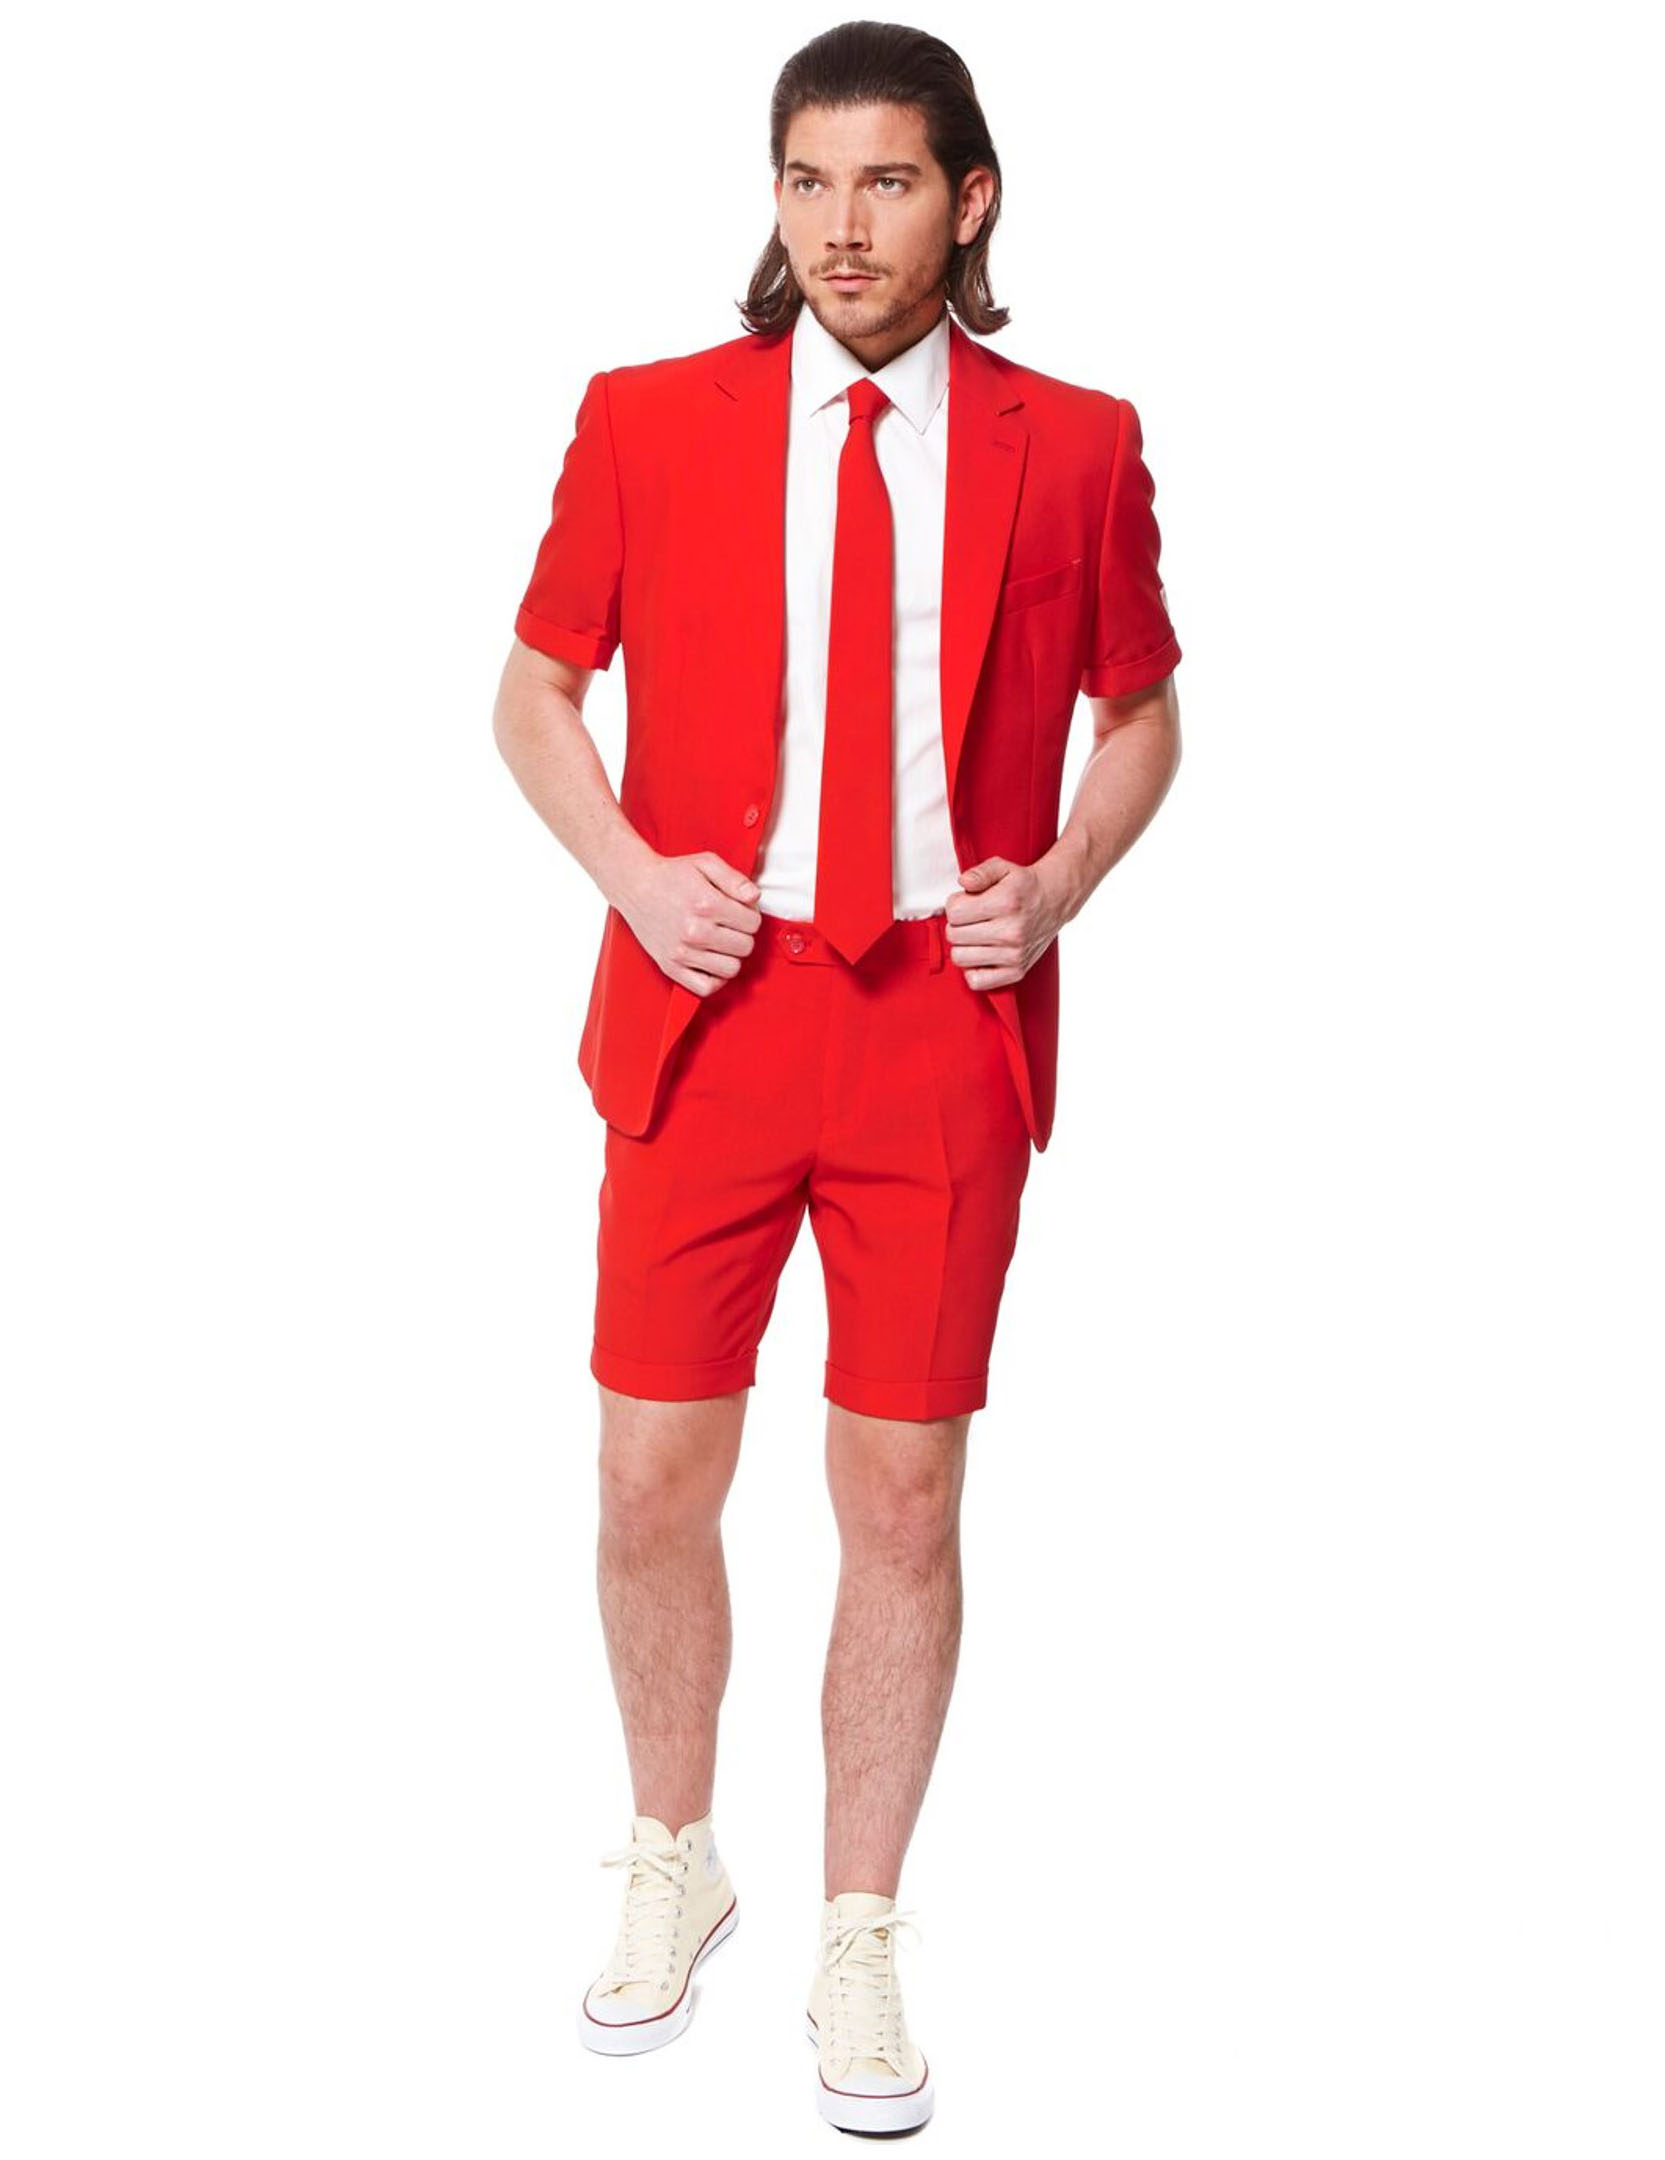 opposuits sommeranzug f r herren in rot. Black Bedroom Furniture Sets. Home Design Ideas